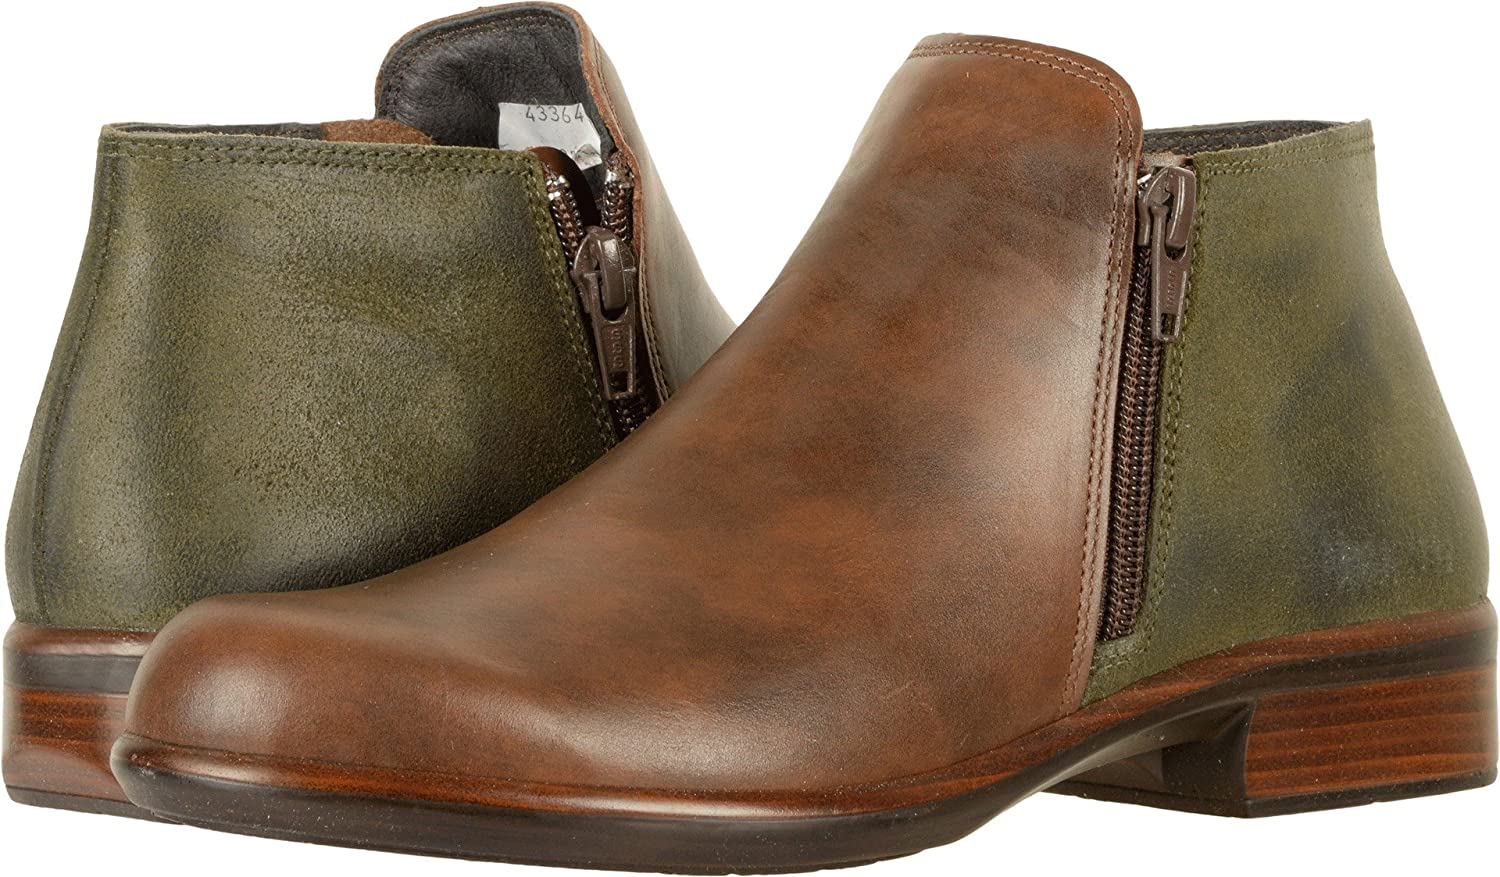 NAOT Women's Helm Ankle Bootie B01MYAM56B 35 M EU|Pecan Brown, Oily Olive Suede